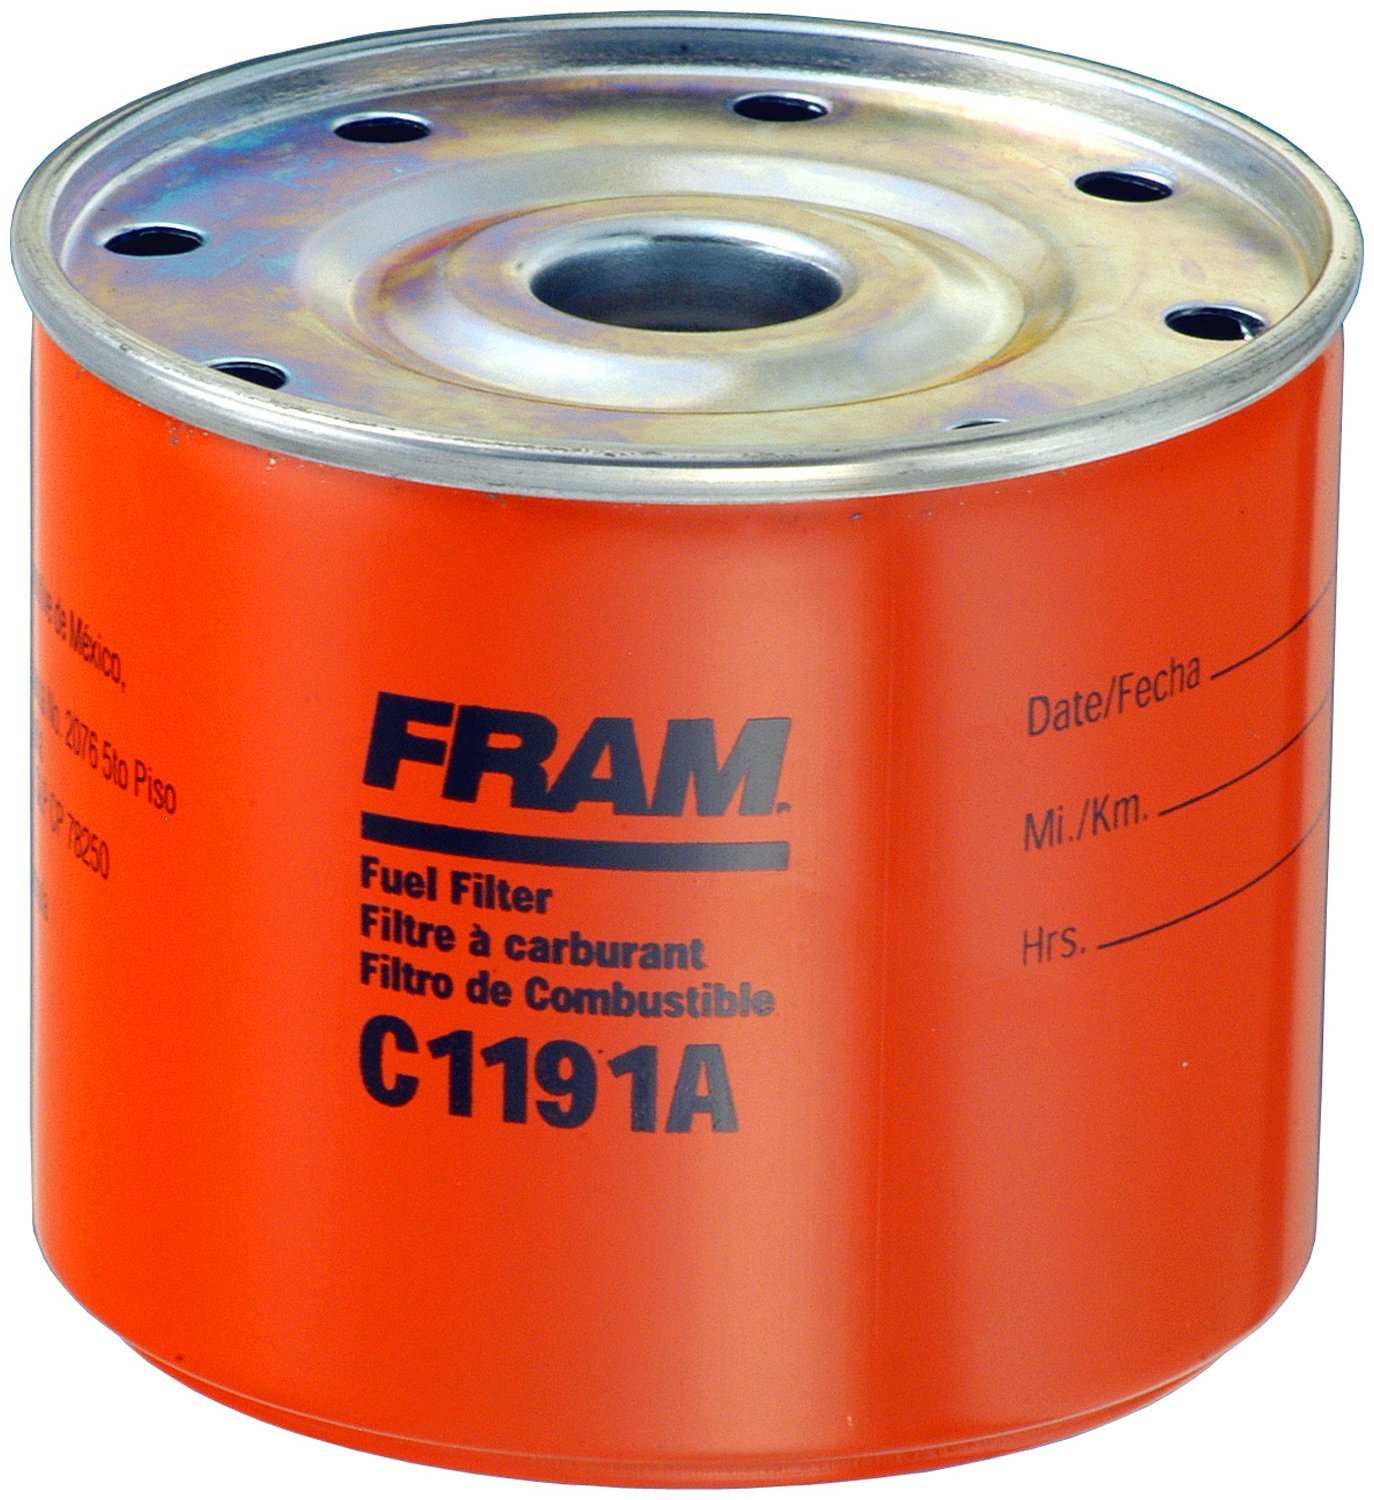 все цены на Fram Group C1191A C1191A Fuel Filter онлайн